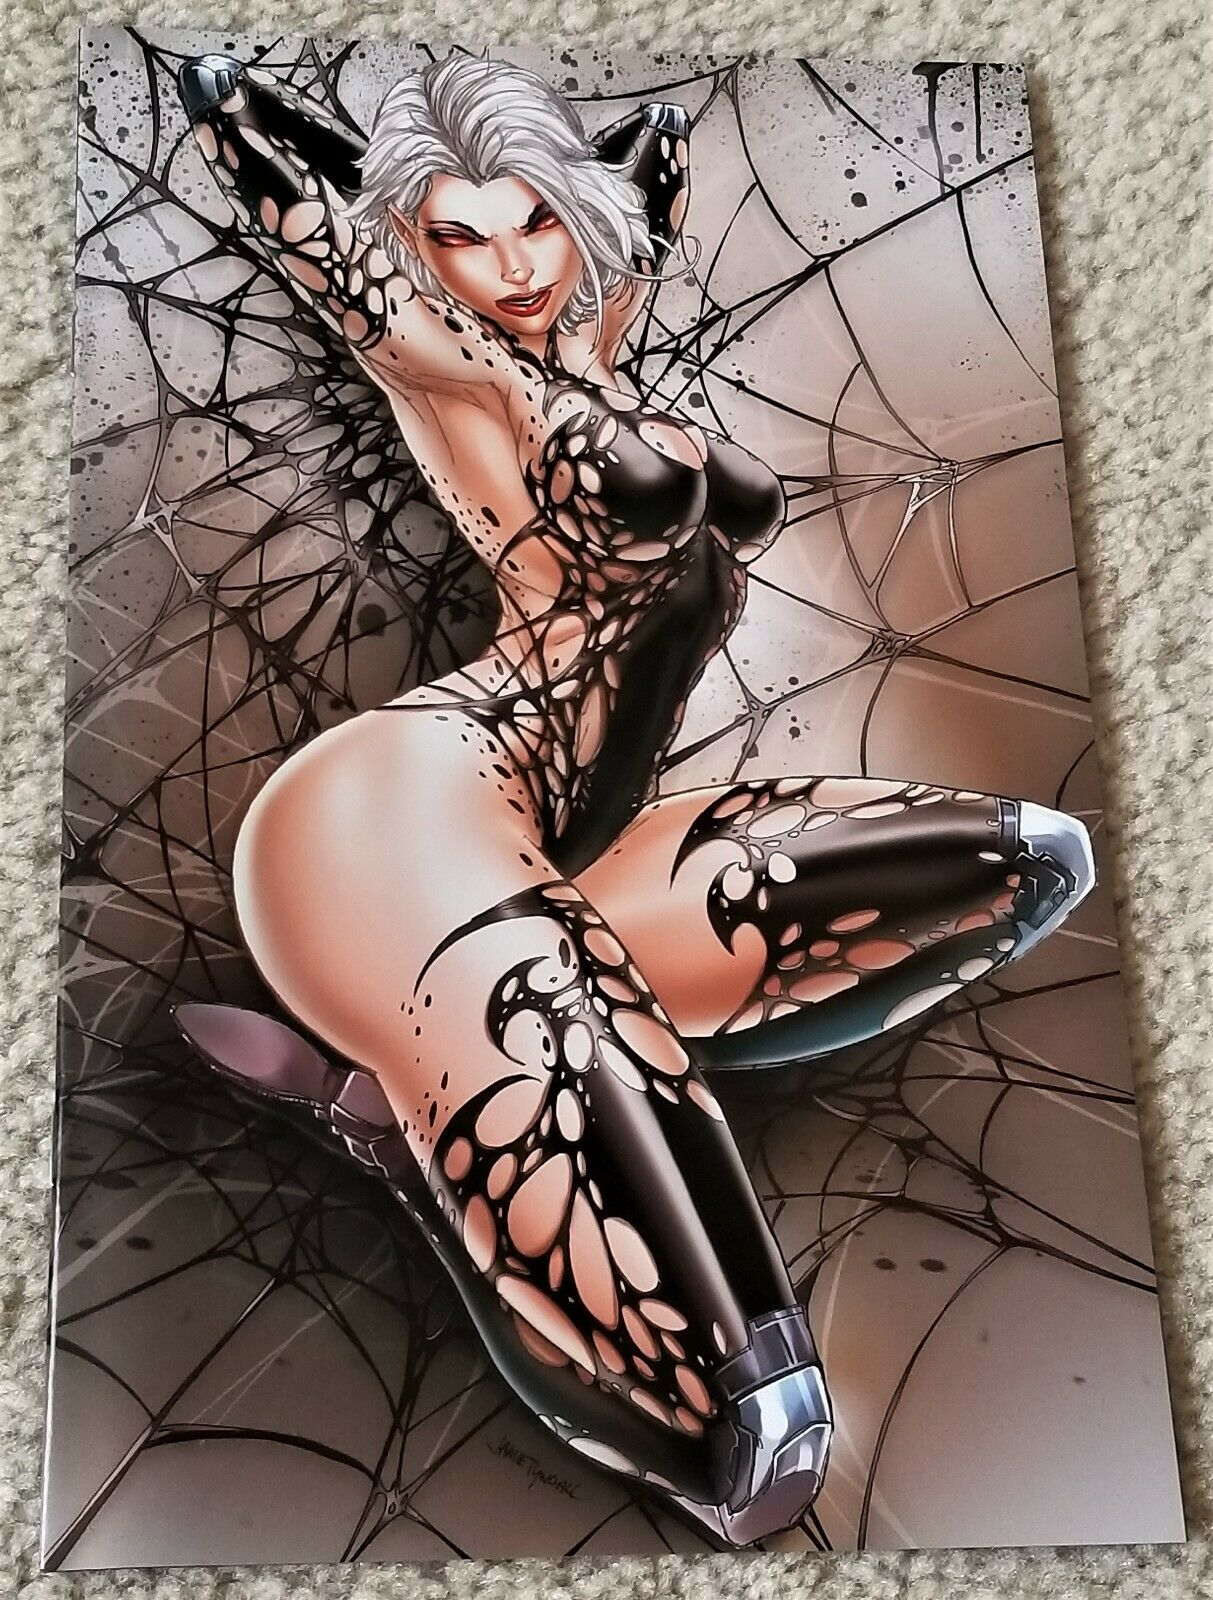 WHITE WIDOW #1 JAMIE TYNDALL 2nd PRINT NAUGHTY VARIANT 200 Pt RUN 8.0 - 9.0